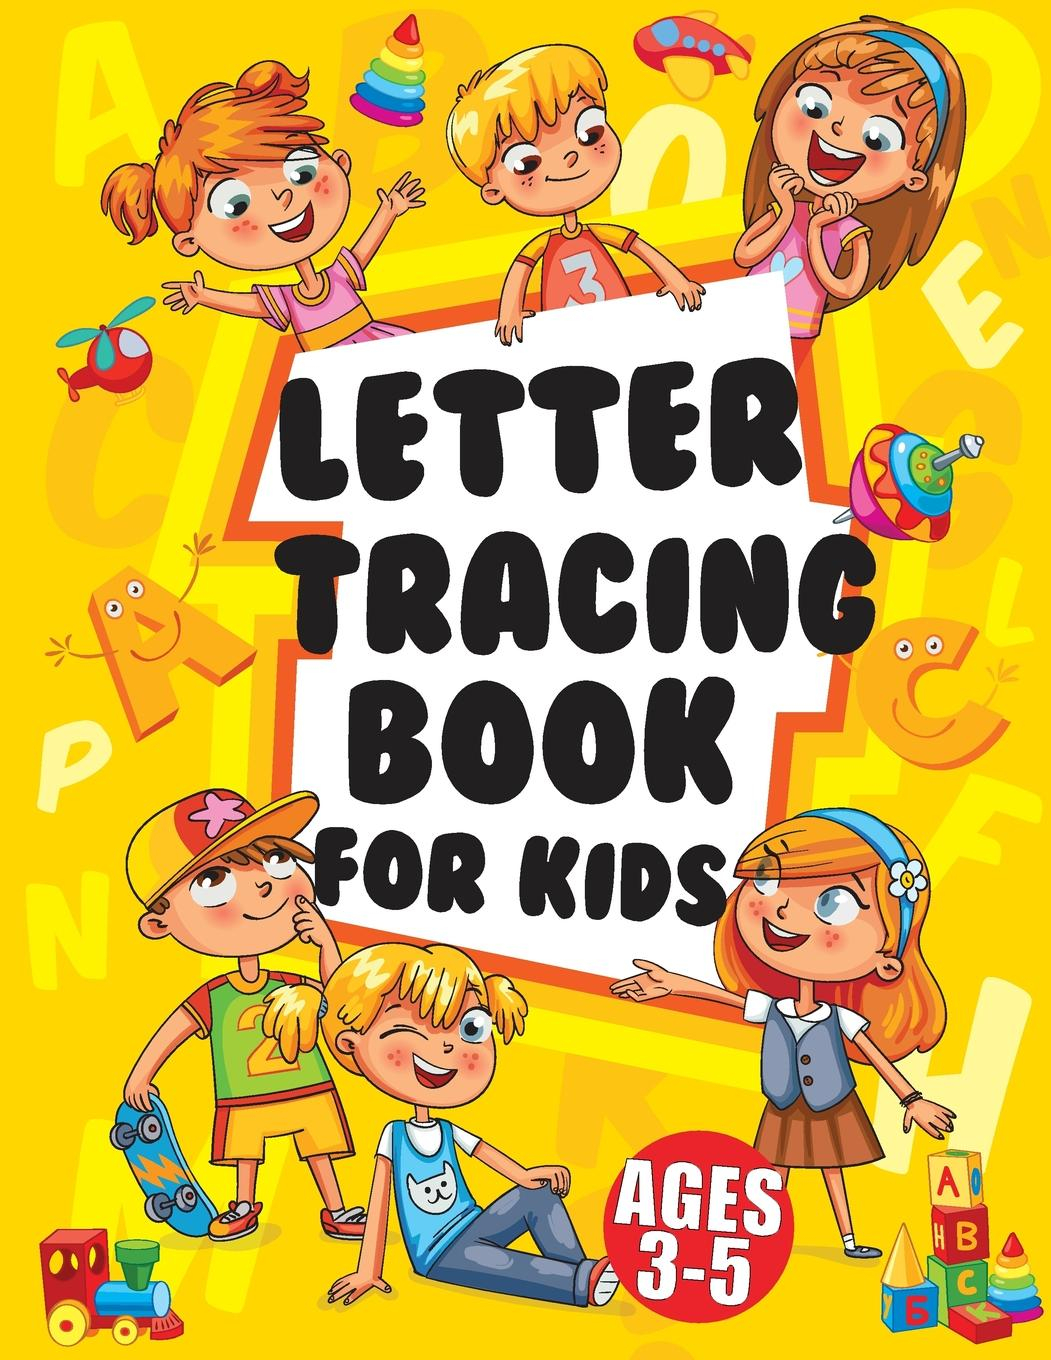 Letter Tracing Books For Kids Ages 3-5 : Large Print Trace Letters (Book  Size 8.5X11 Inches) - Trace Letters Of The Alphabet Practicing With (Kids pertaining to Alphabet Tracing Book Walmart